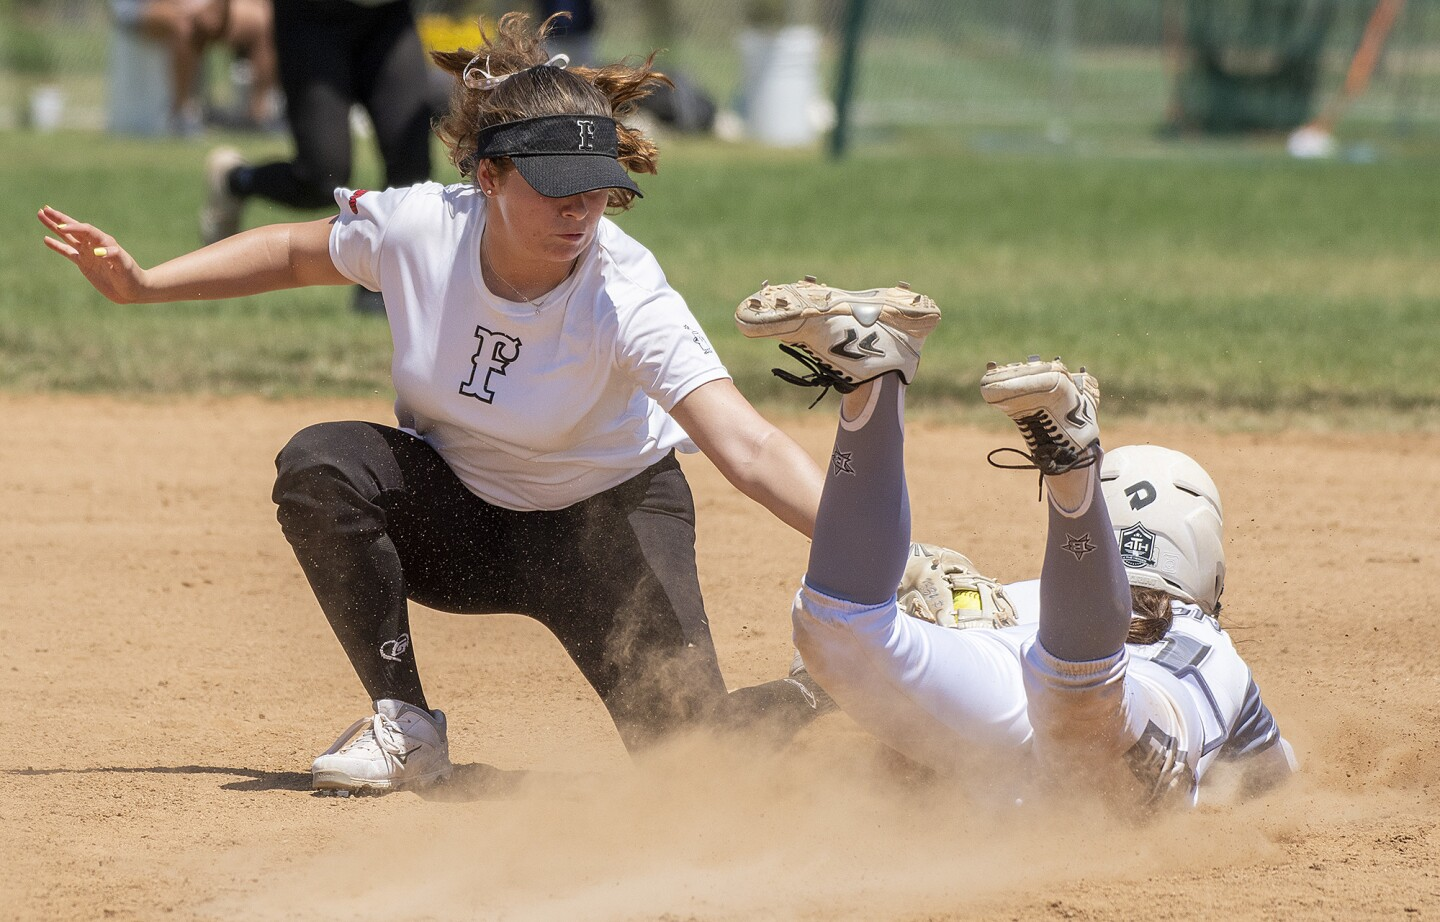 Lakewood Firecrackers's Izzy Pena tags out Texas Bombers's Lourdes Bacon in a 16U Premier softball game in the PGF Nationals in Fountain Valley on Wednesday, August 1.